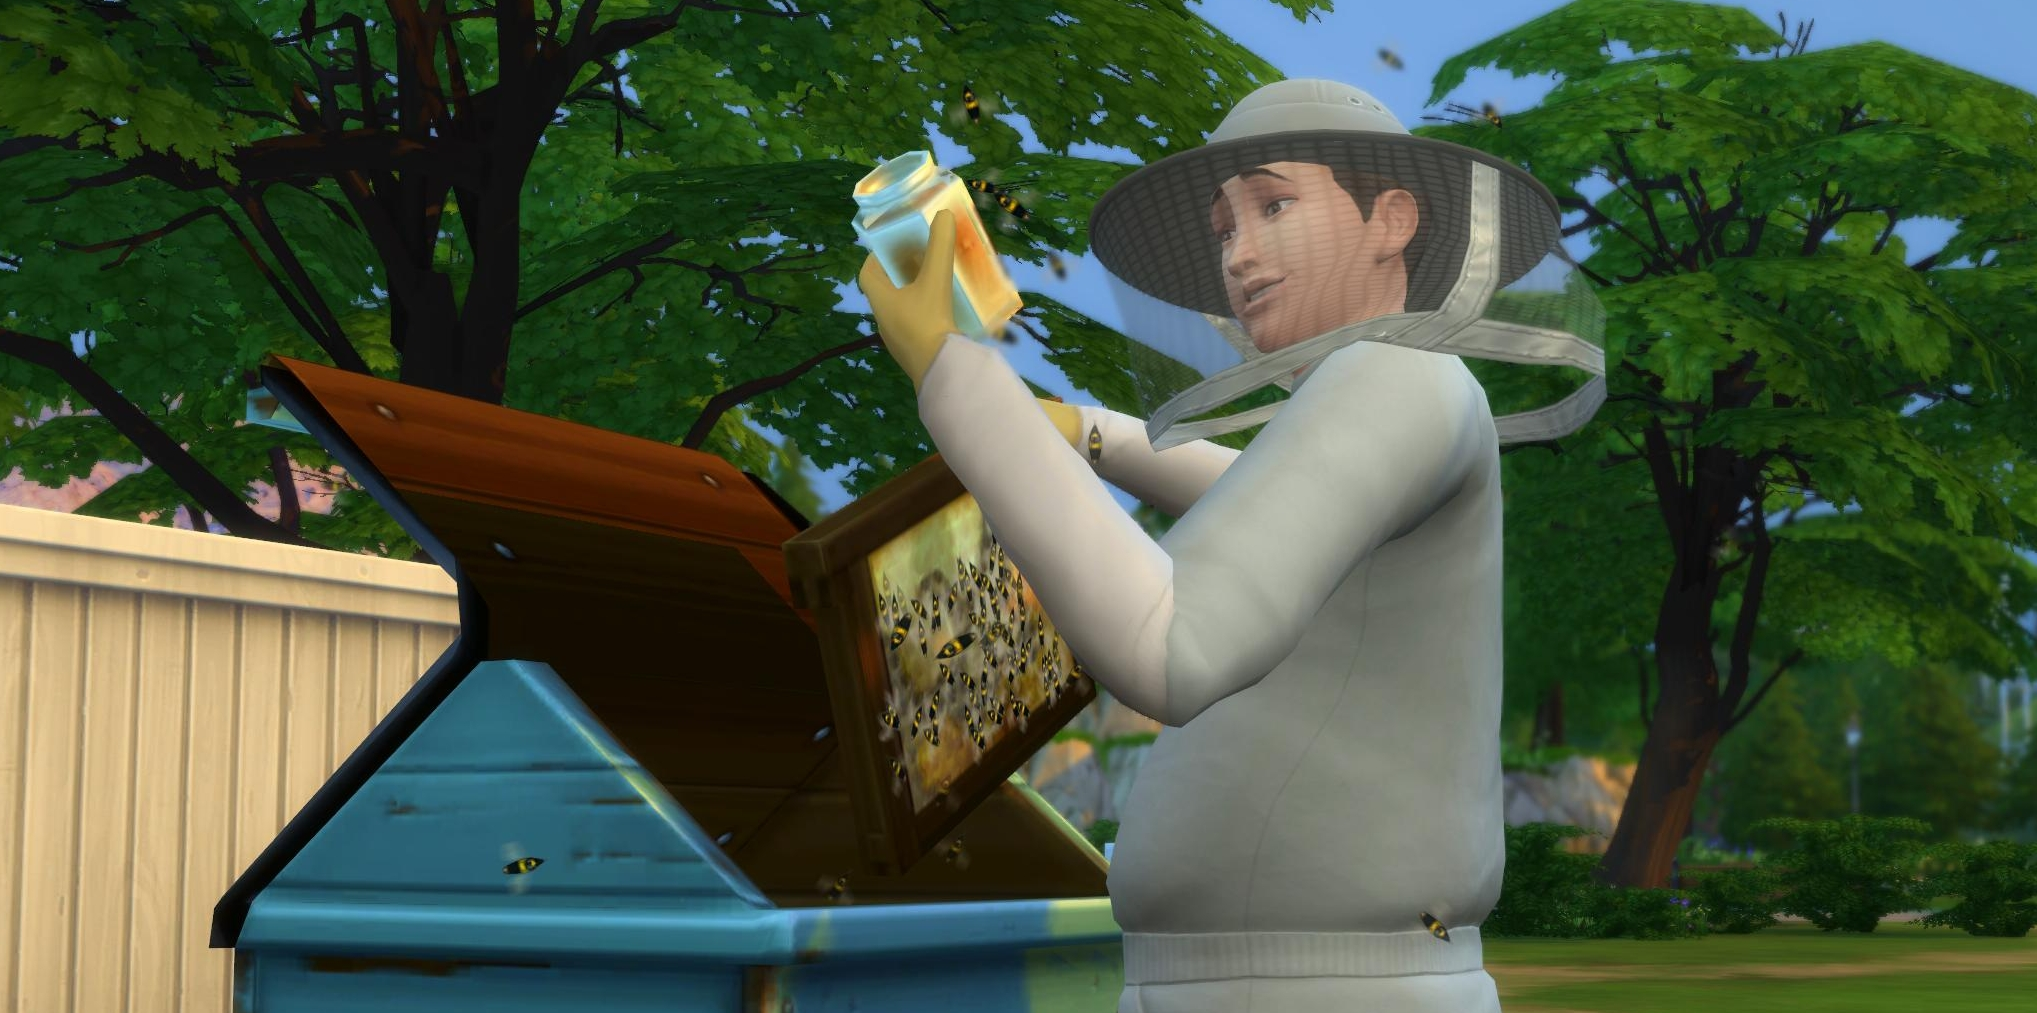 Beekeeping with the Bee Box in The Sims 4 Seasons